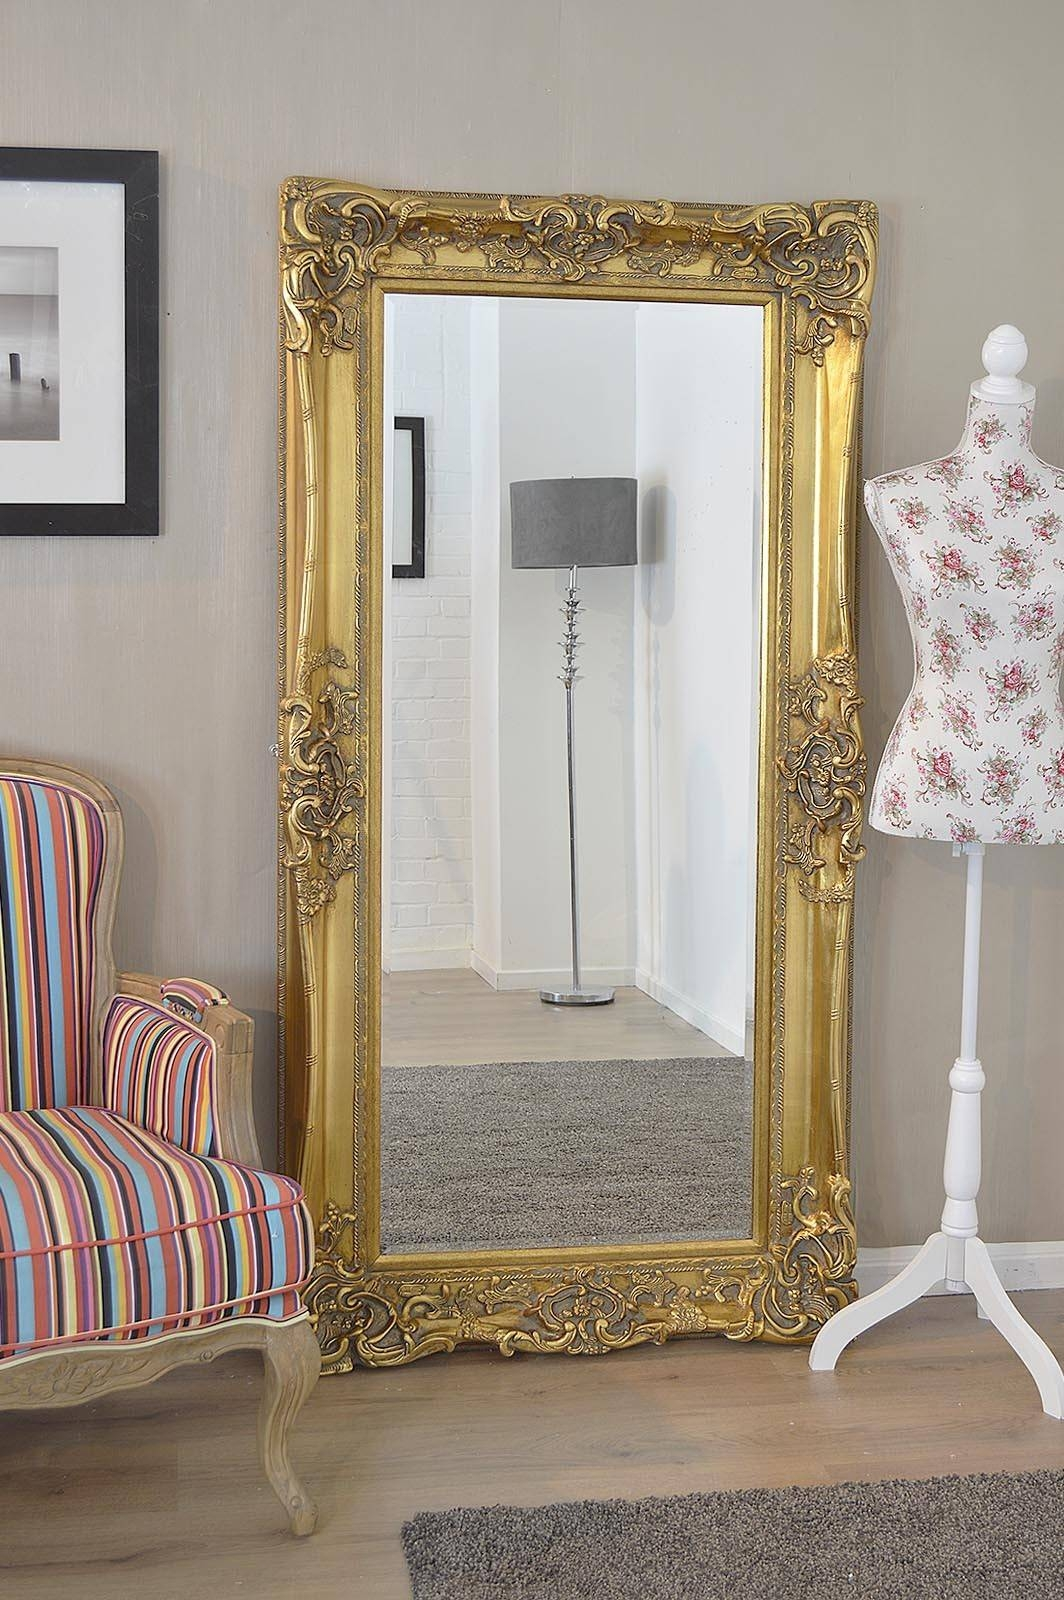 Classic Impression On Antique Wall Mirrors | Vwho Within Large Vintage Mirrors (View 6 of 25)